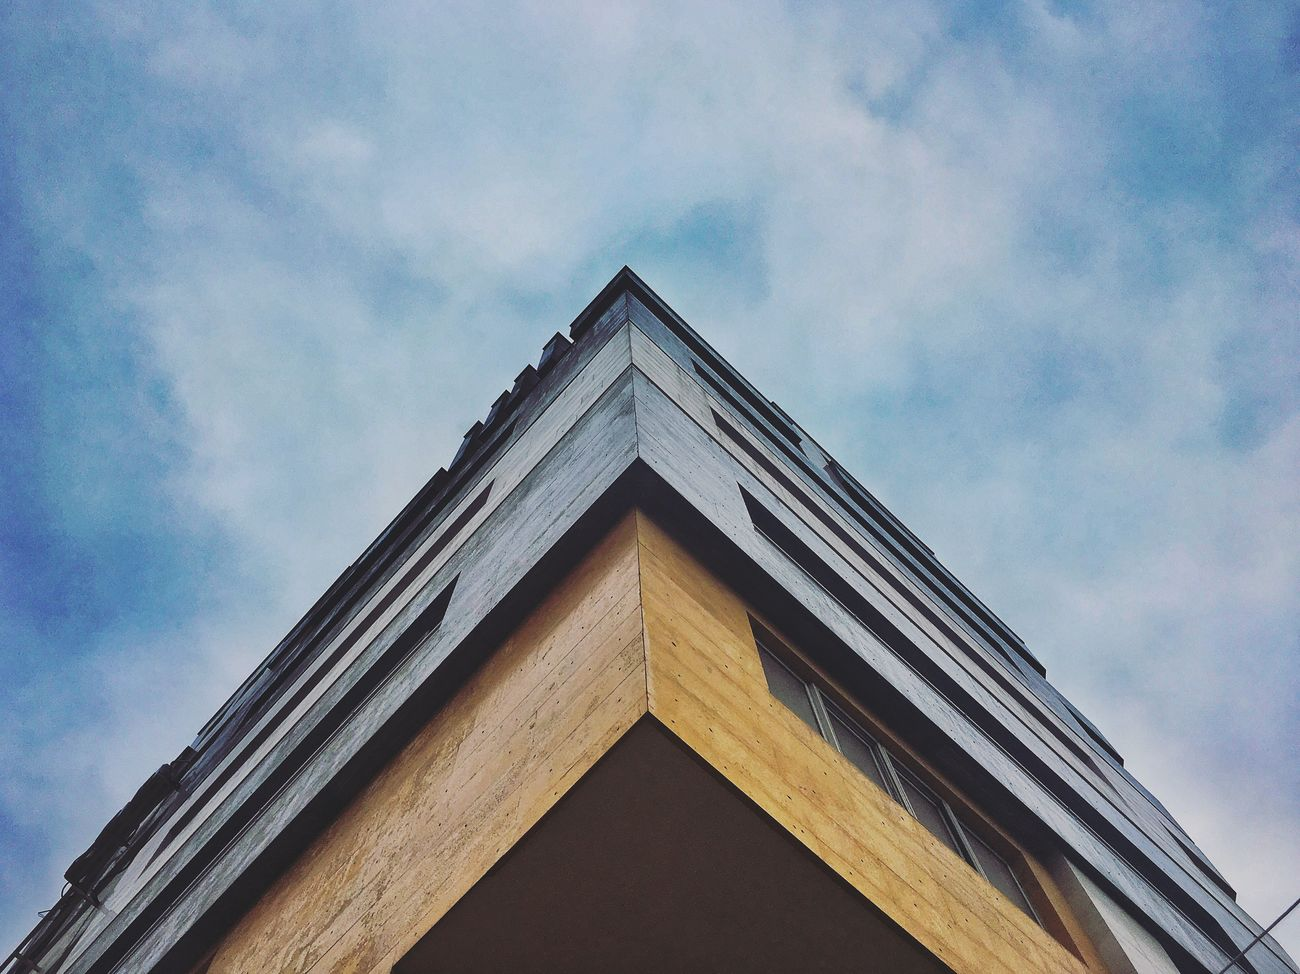 Low Angle View Architecture Built Structure Sky Building Exterior Cloud - Sky No People Day Outdoors